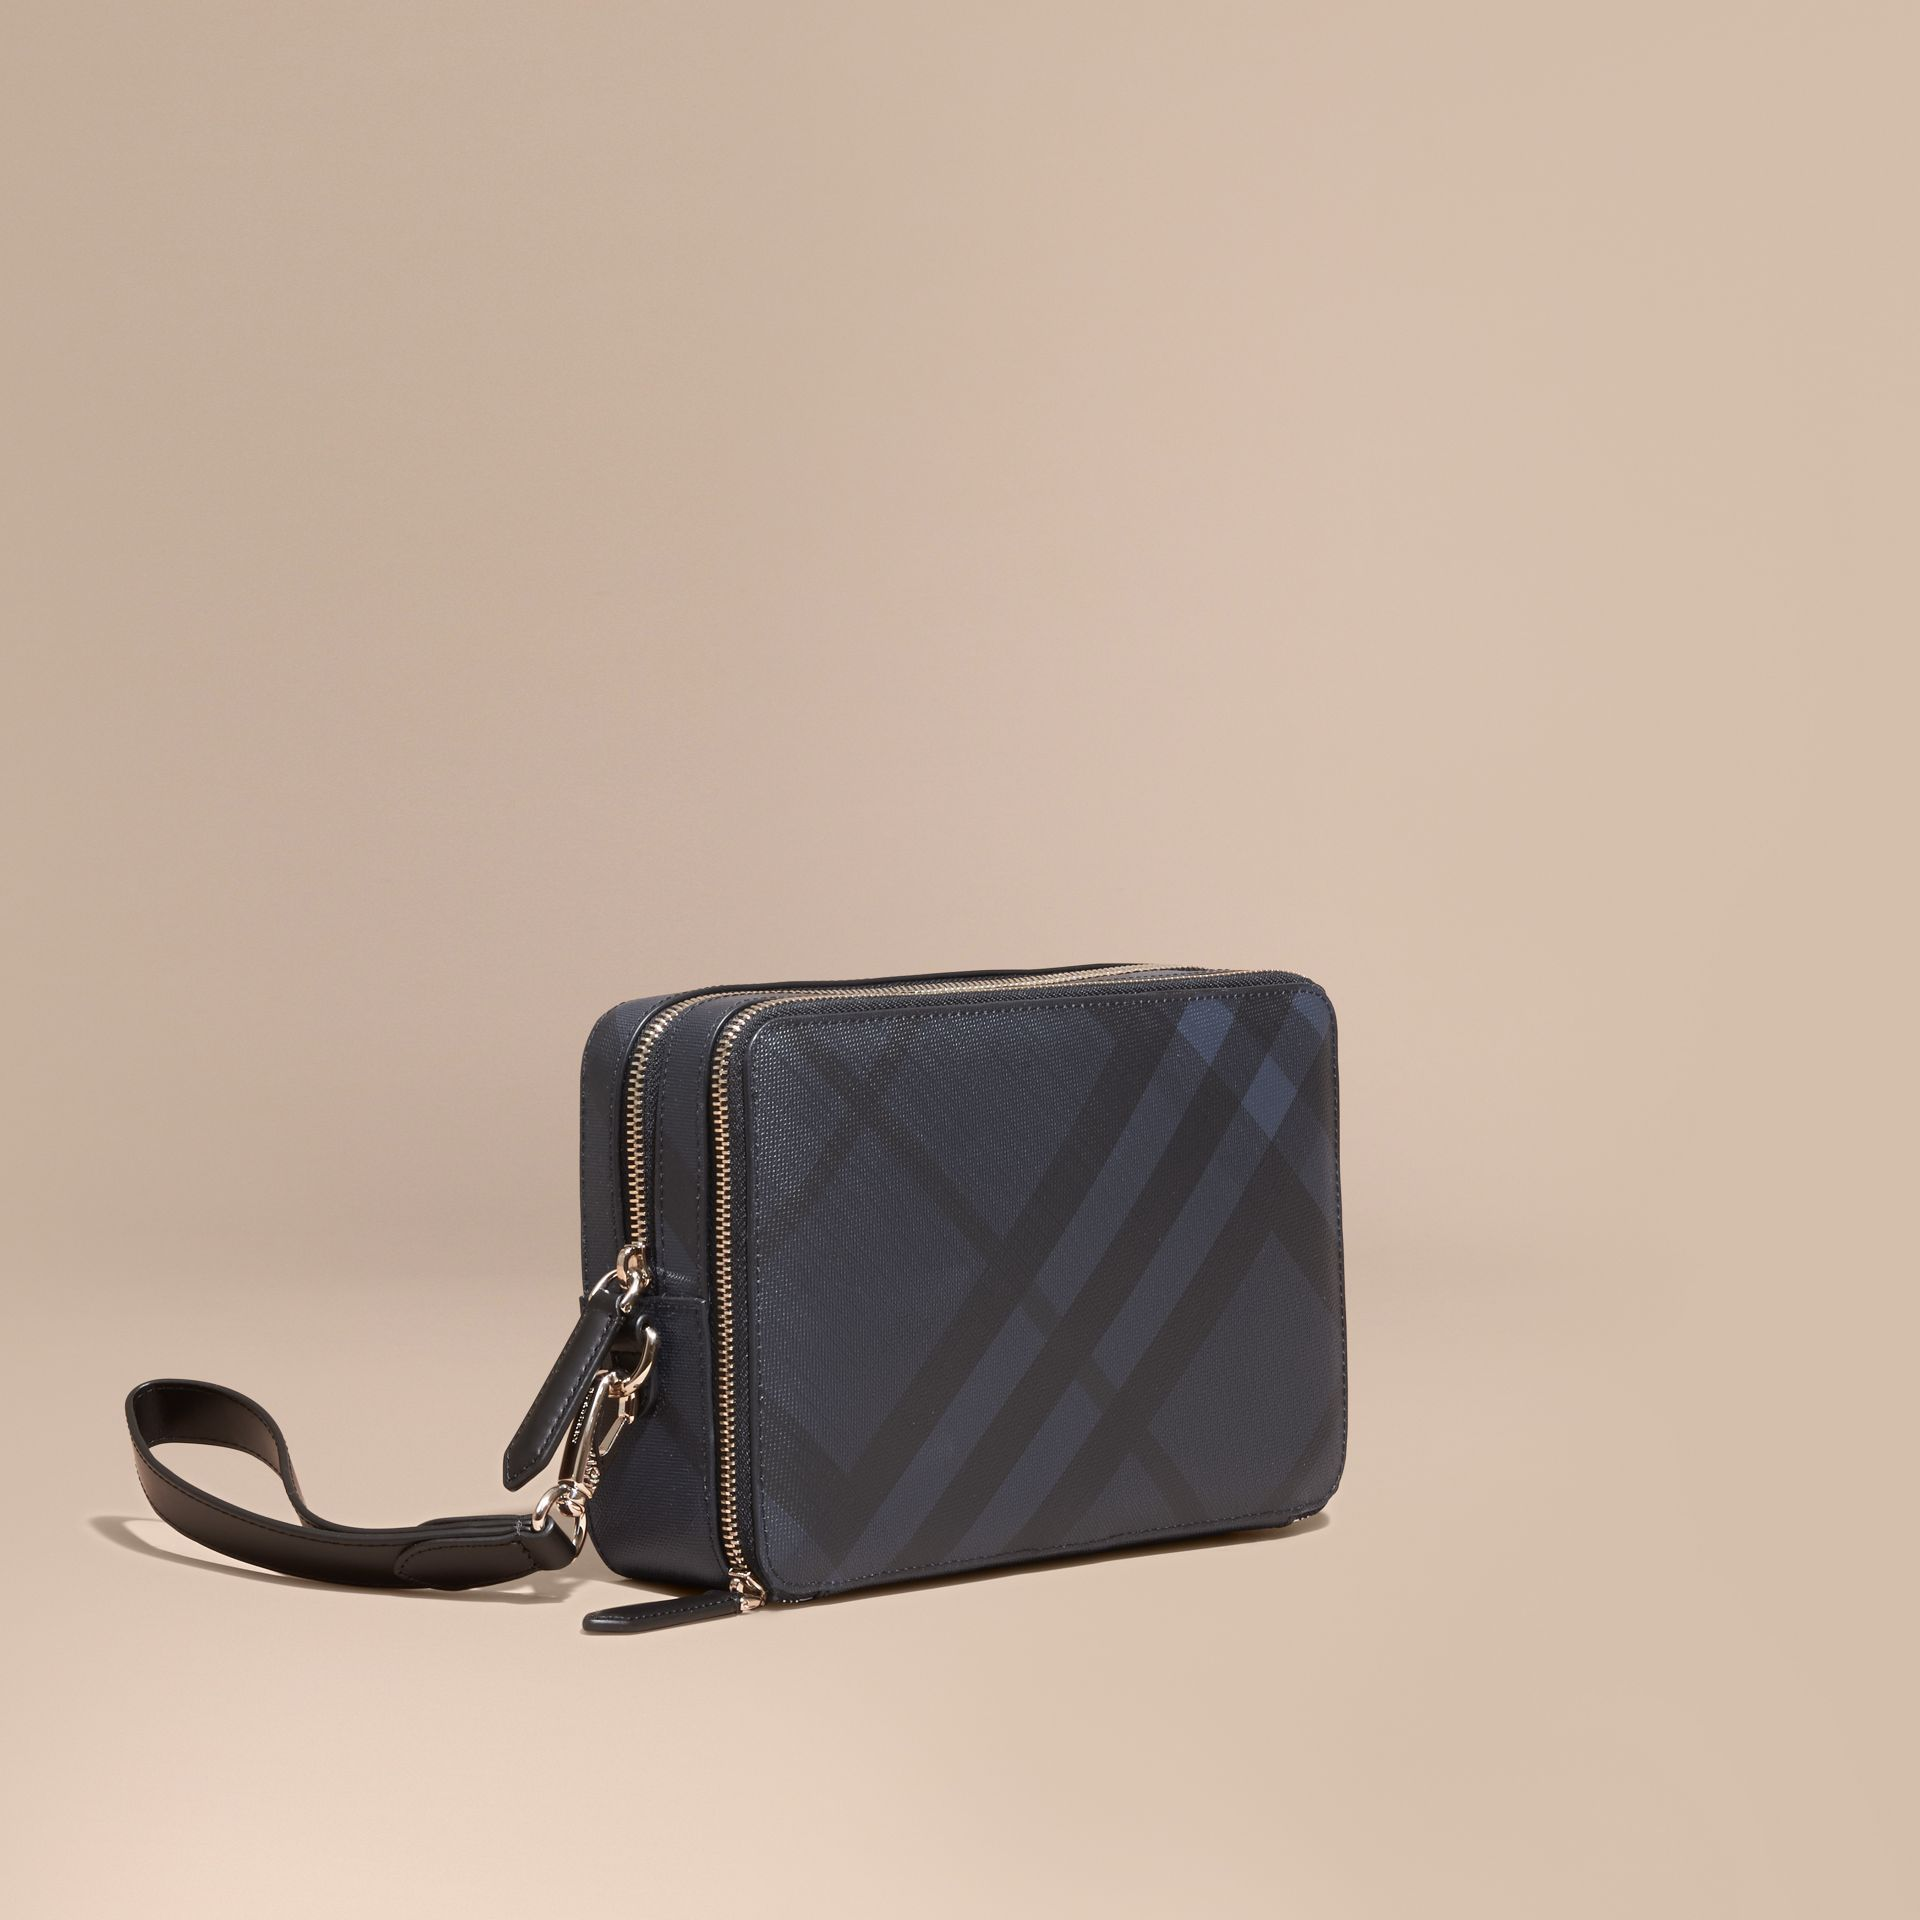 Leather-trimmed London Check Pouch in Navy/black - Men | Burberry Australia - gallery image 1